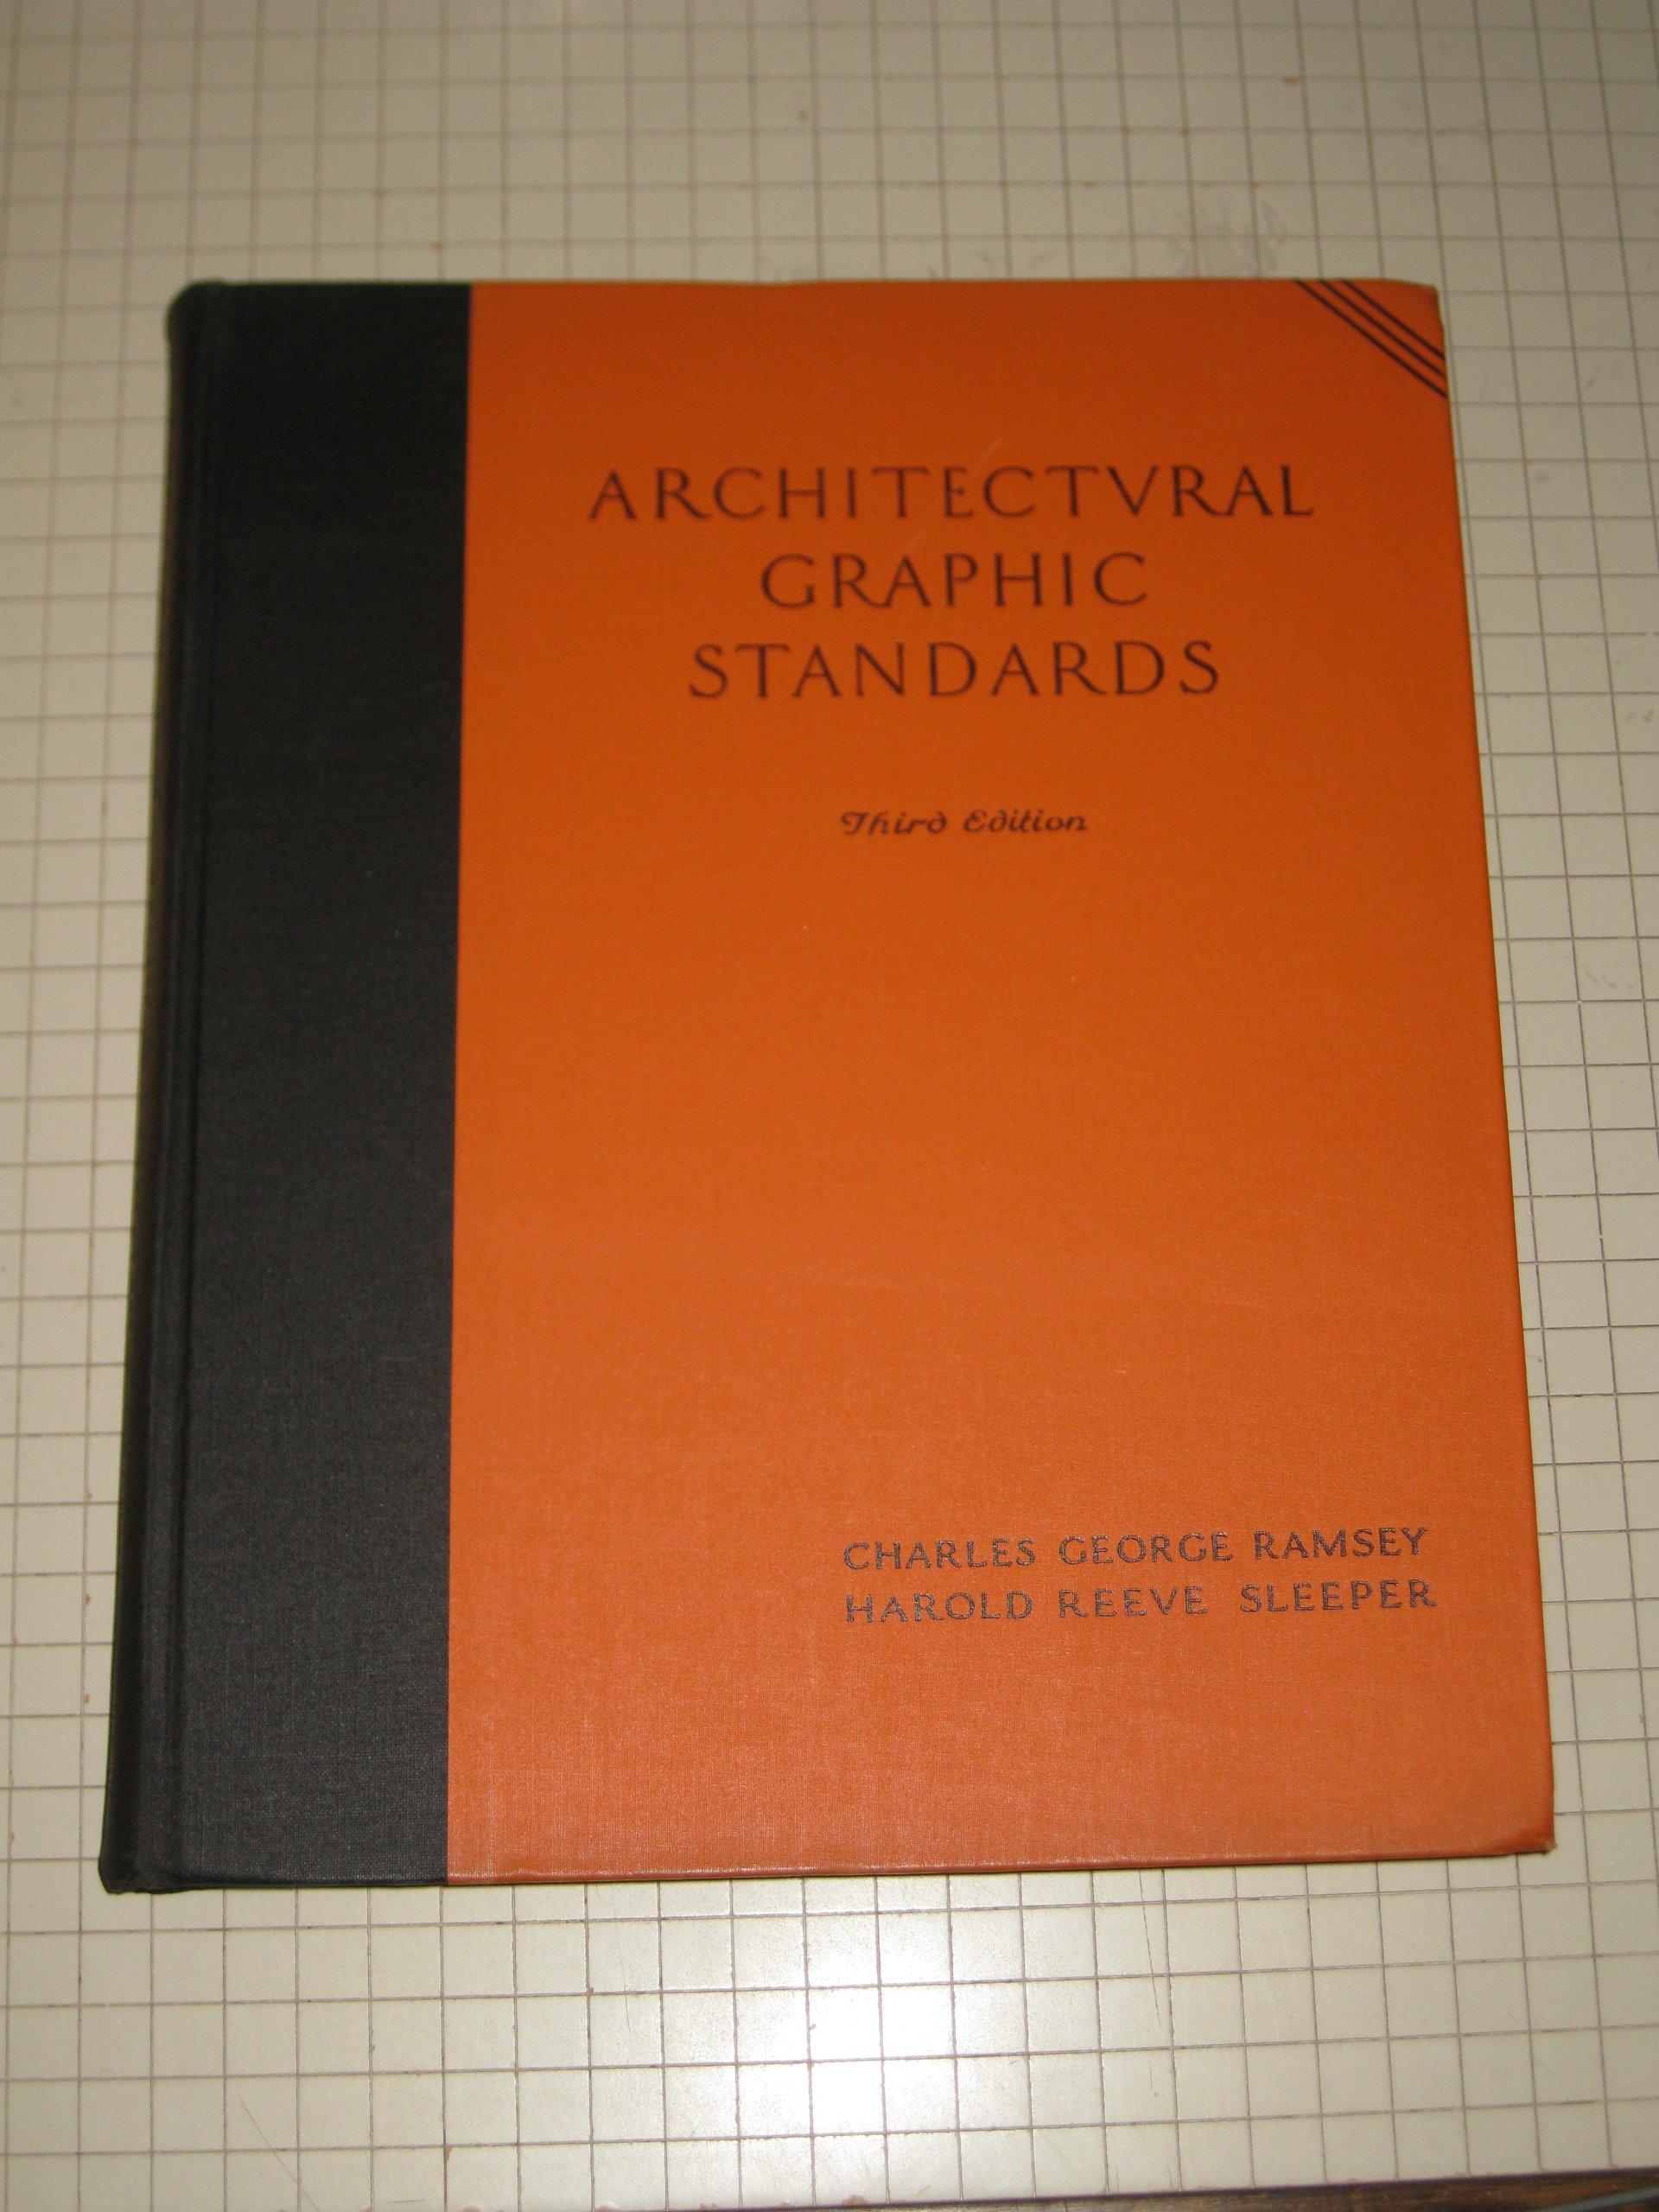 Architectural graphic standards third edition charles george and architectural graphic standards third edition charles george and harold reeve sleeper ramsey 9781127030613 amazon books fandeluxe Image collections